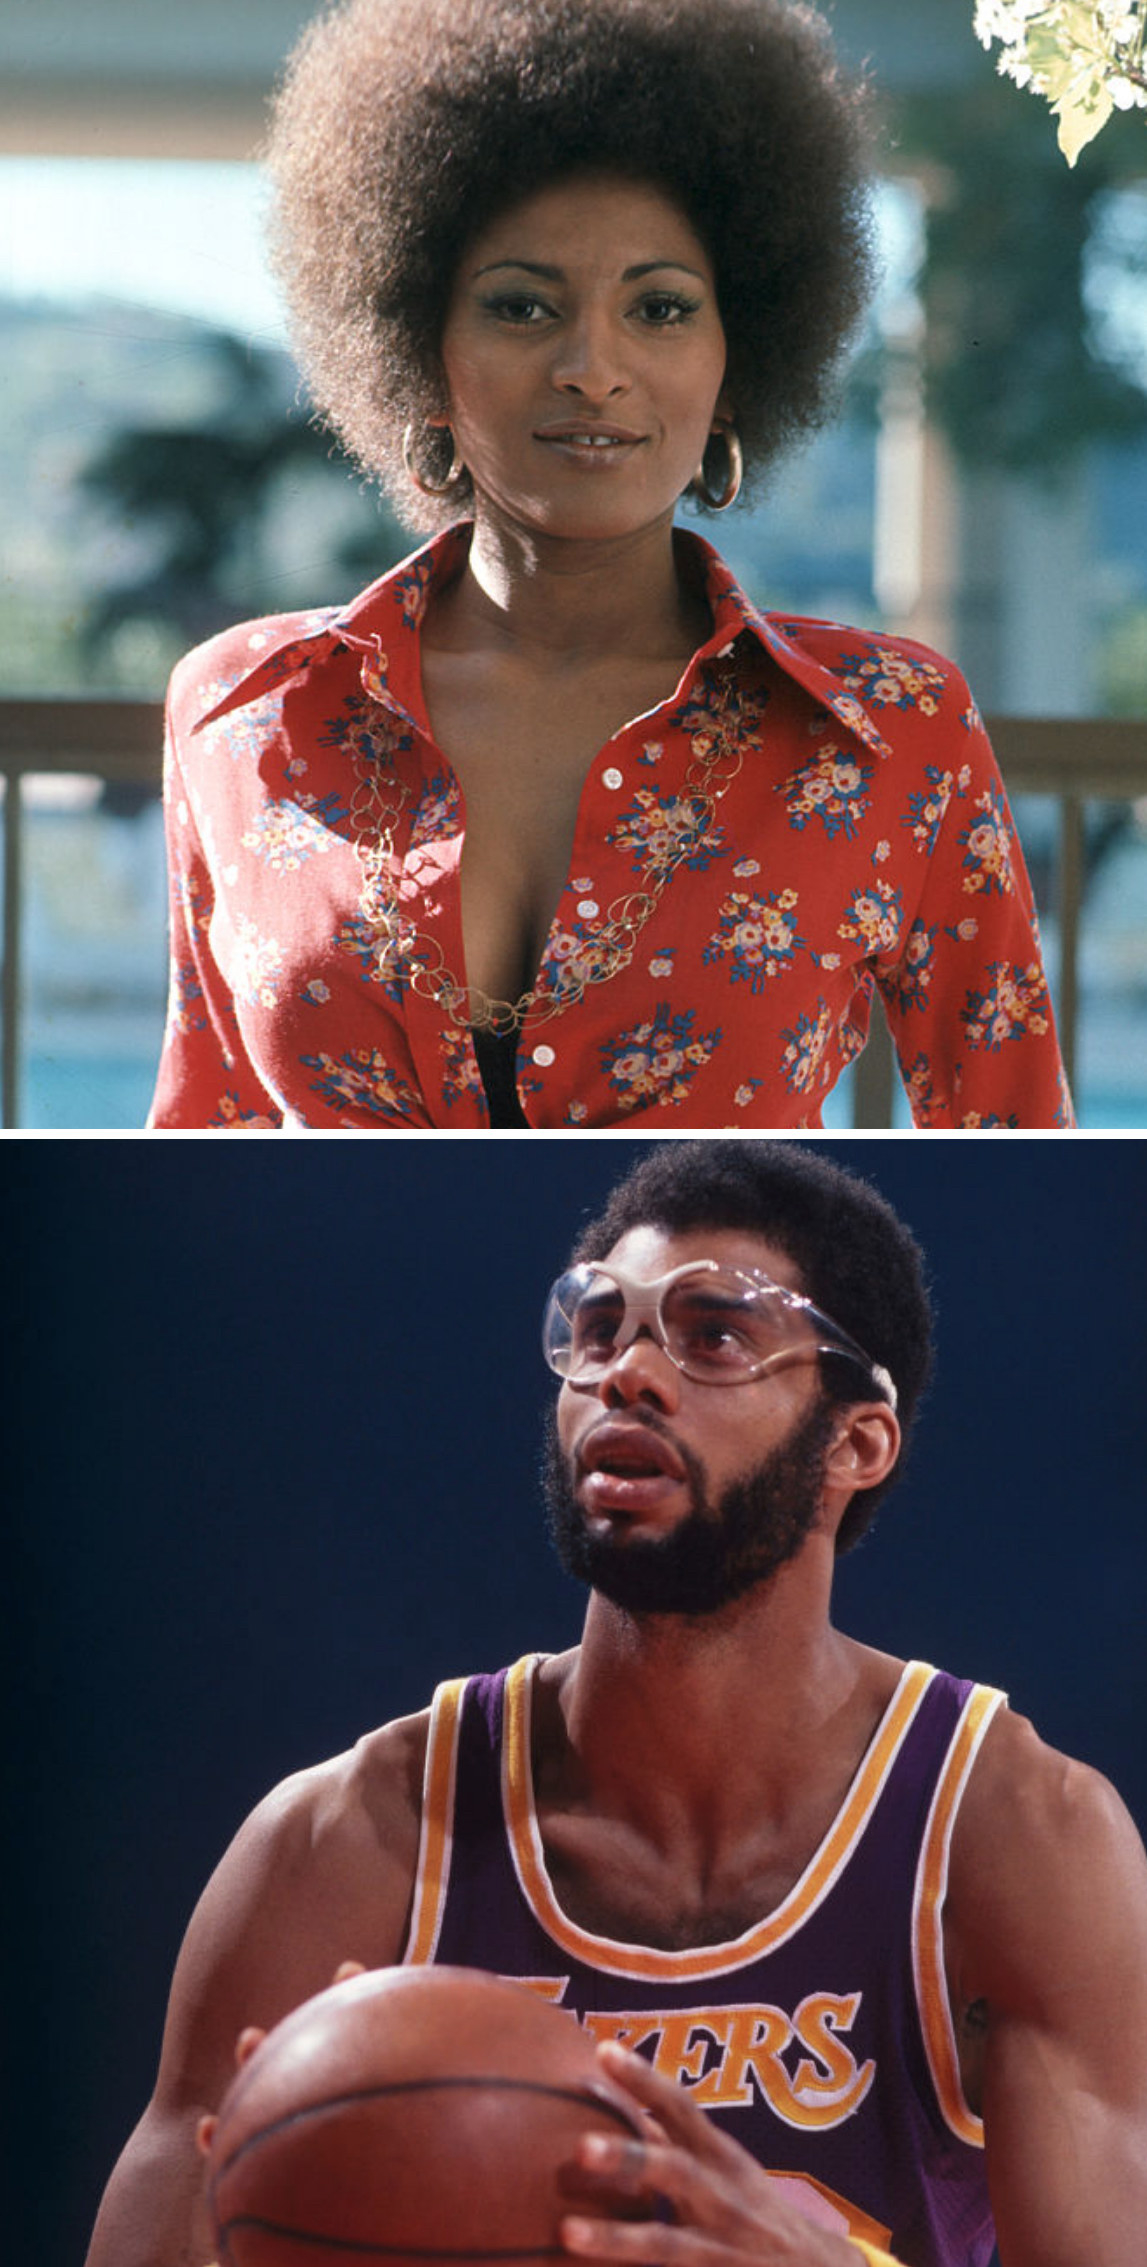 Grier posing for a portrait in LA in 1972; Abdul-Jabbar playing a Lakers game in the mid-'70s